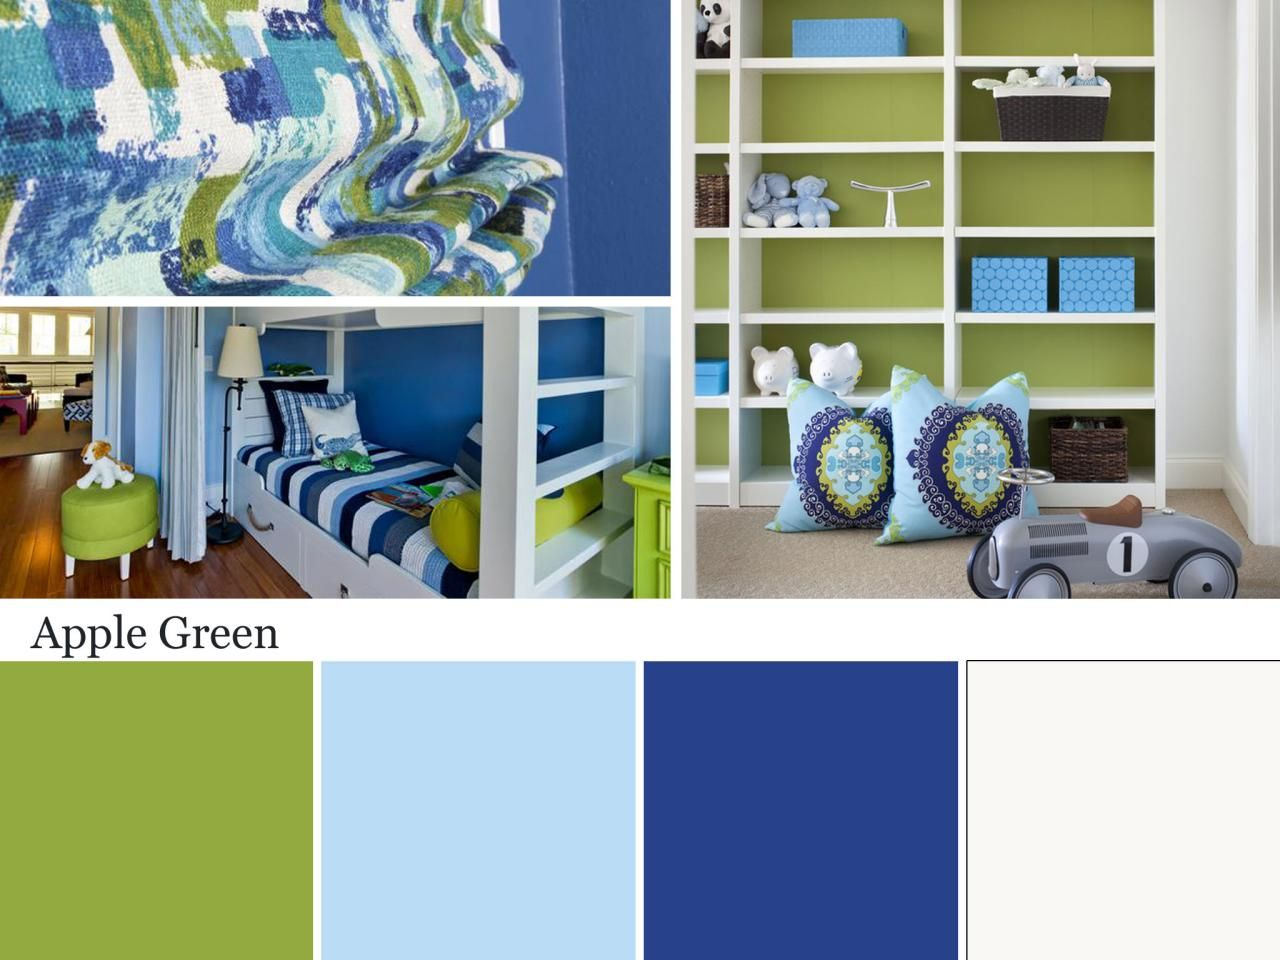 Bedroom colors 2016 green - Color Competition Vote For Your Favorite Color Bedroom Color Palettes Green